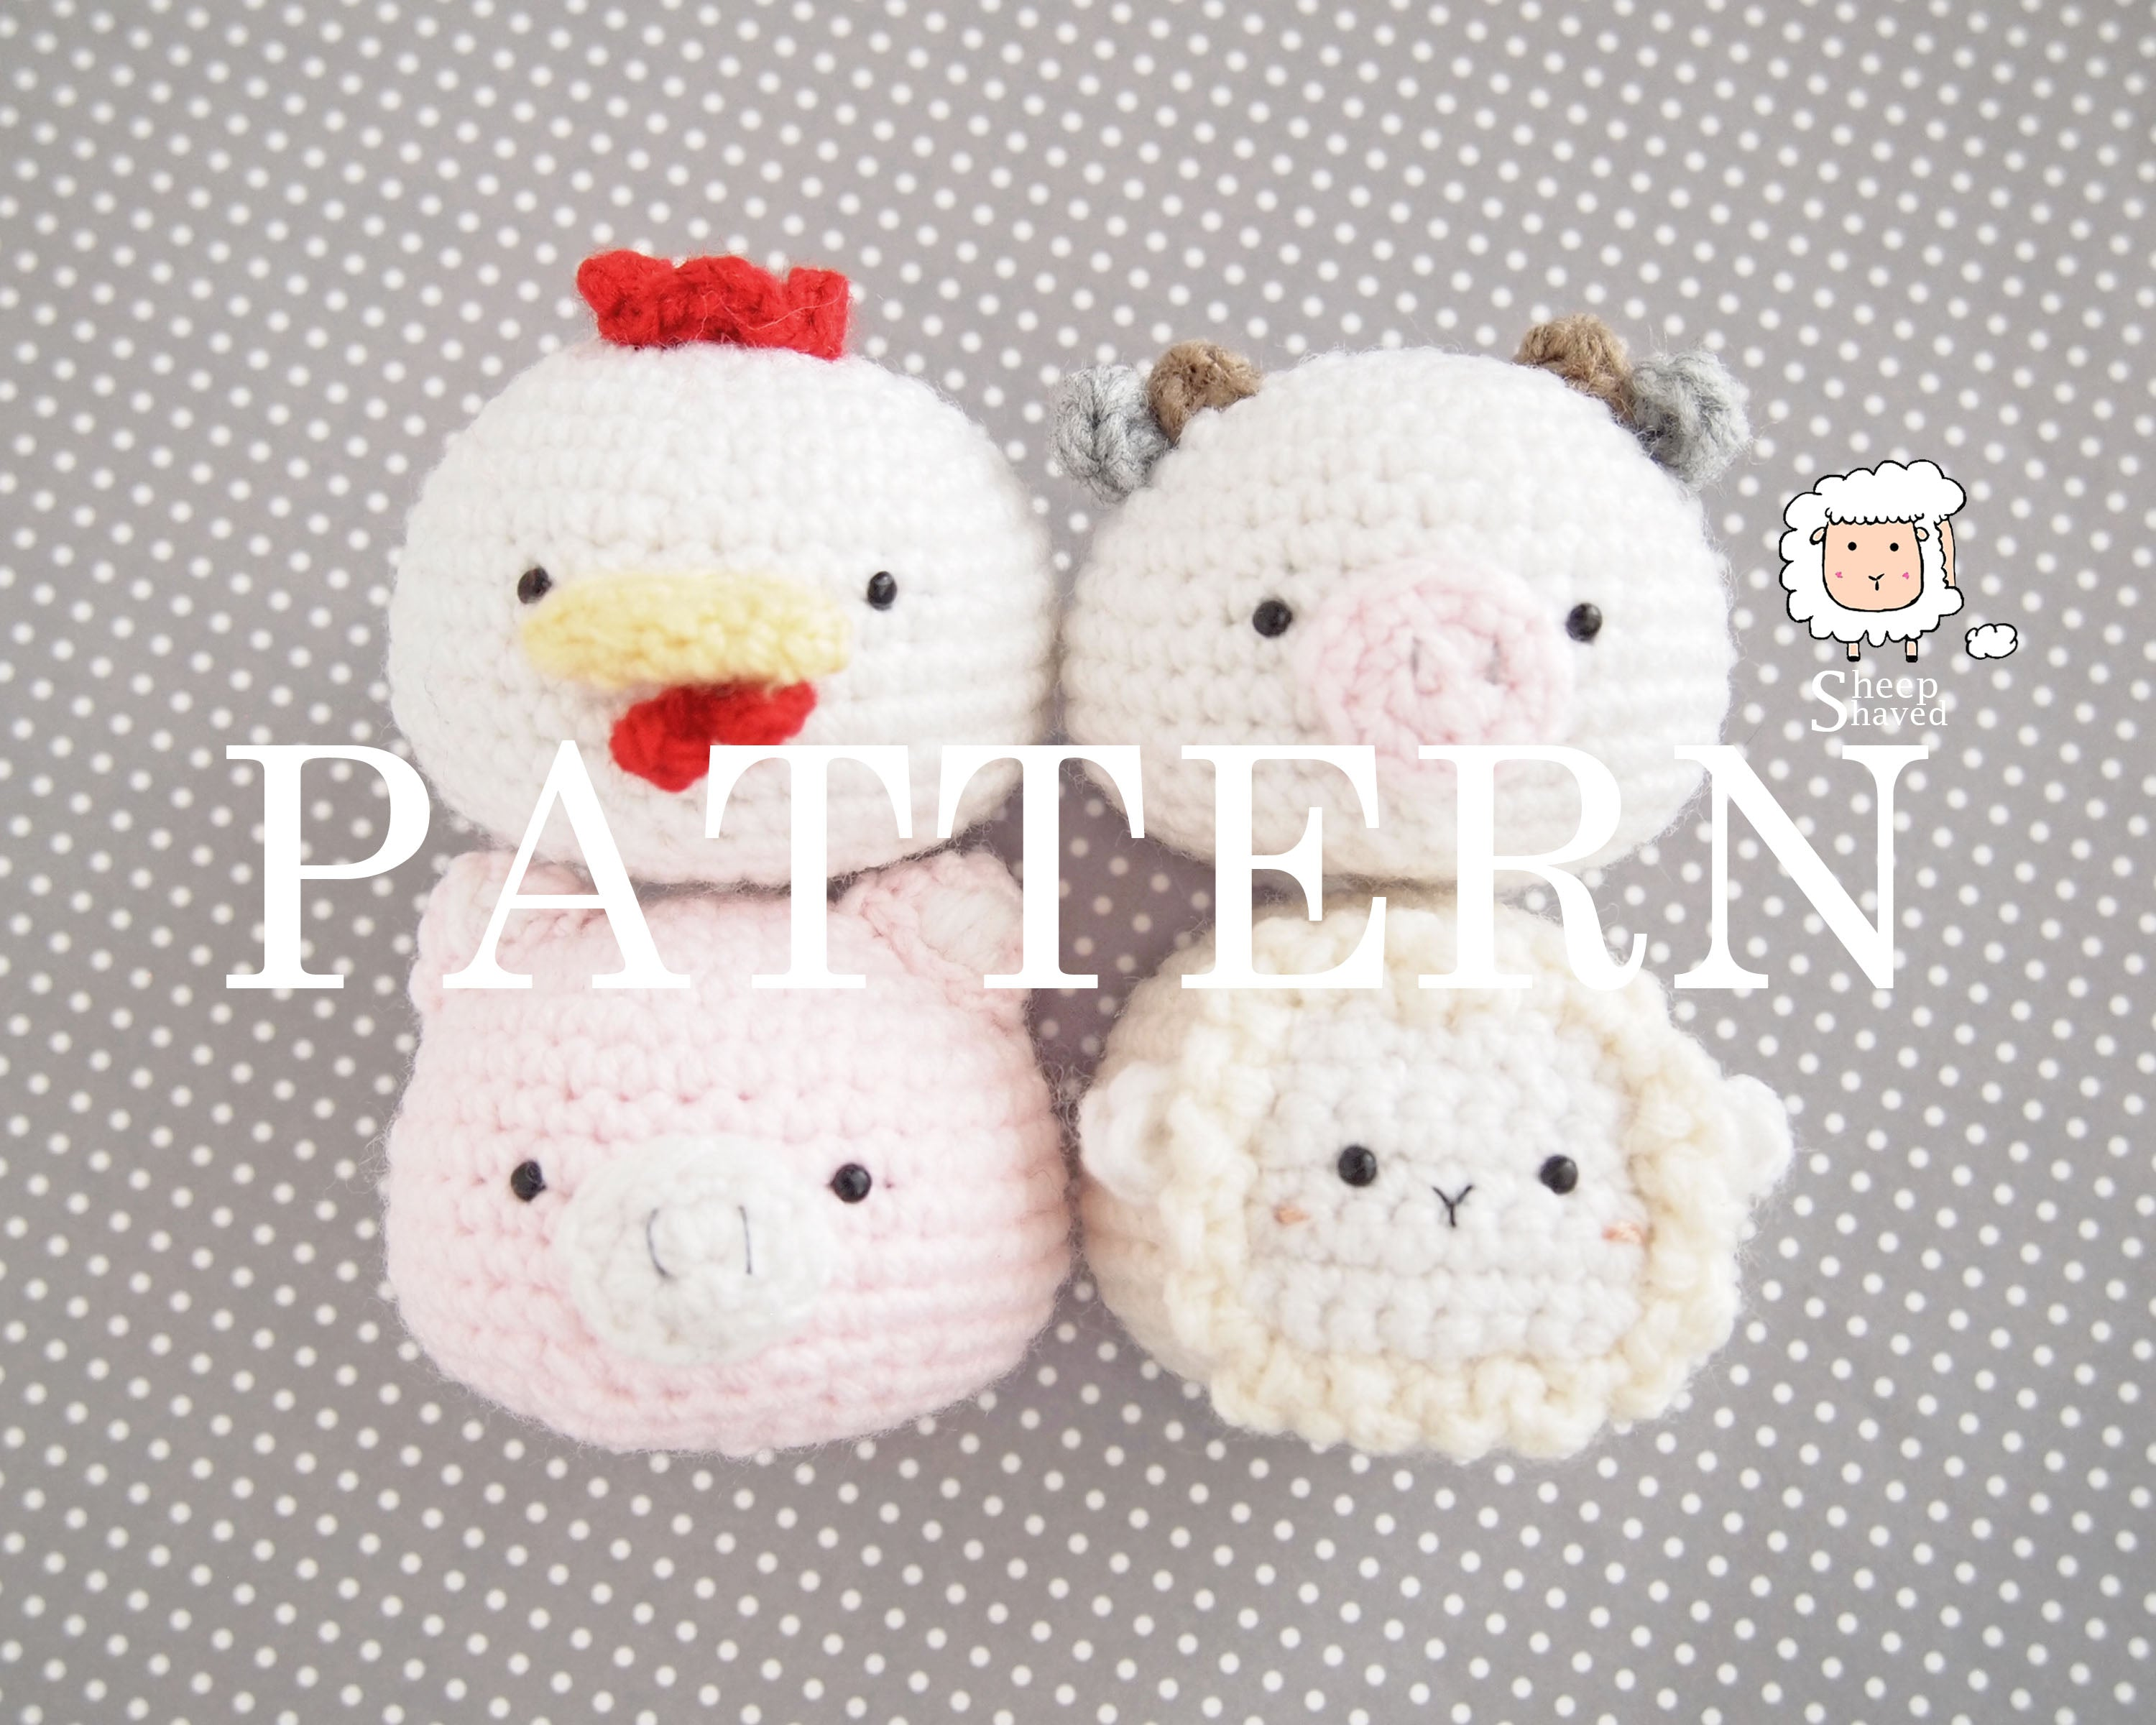 Animal Friends: Farm Edition PDF PATTERN (Chicken, Cow, Pig, and Sheep)